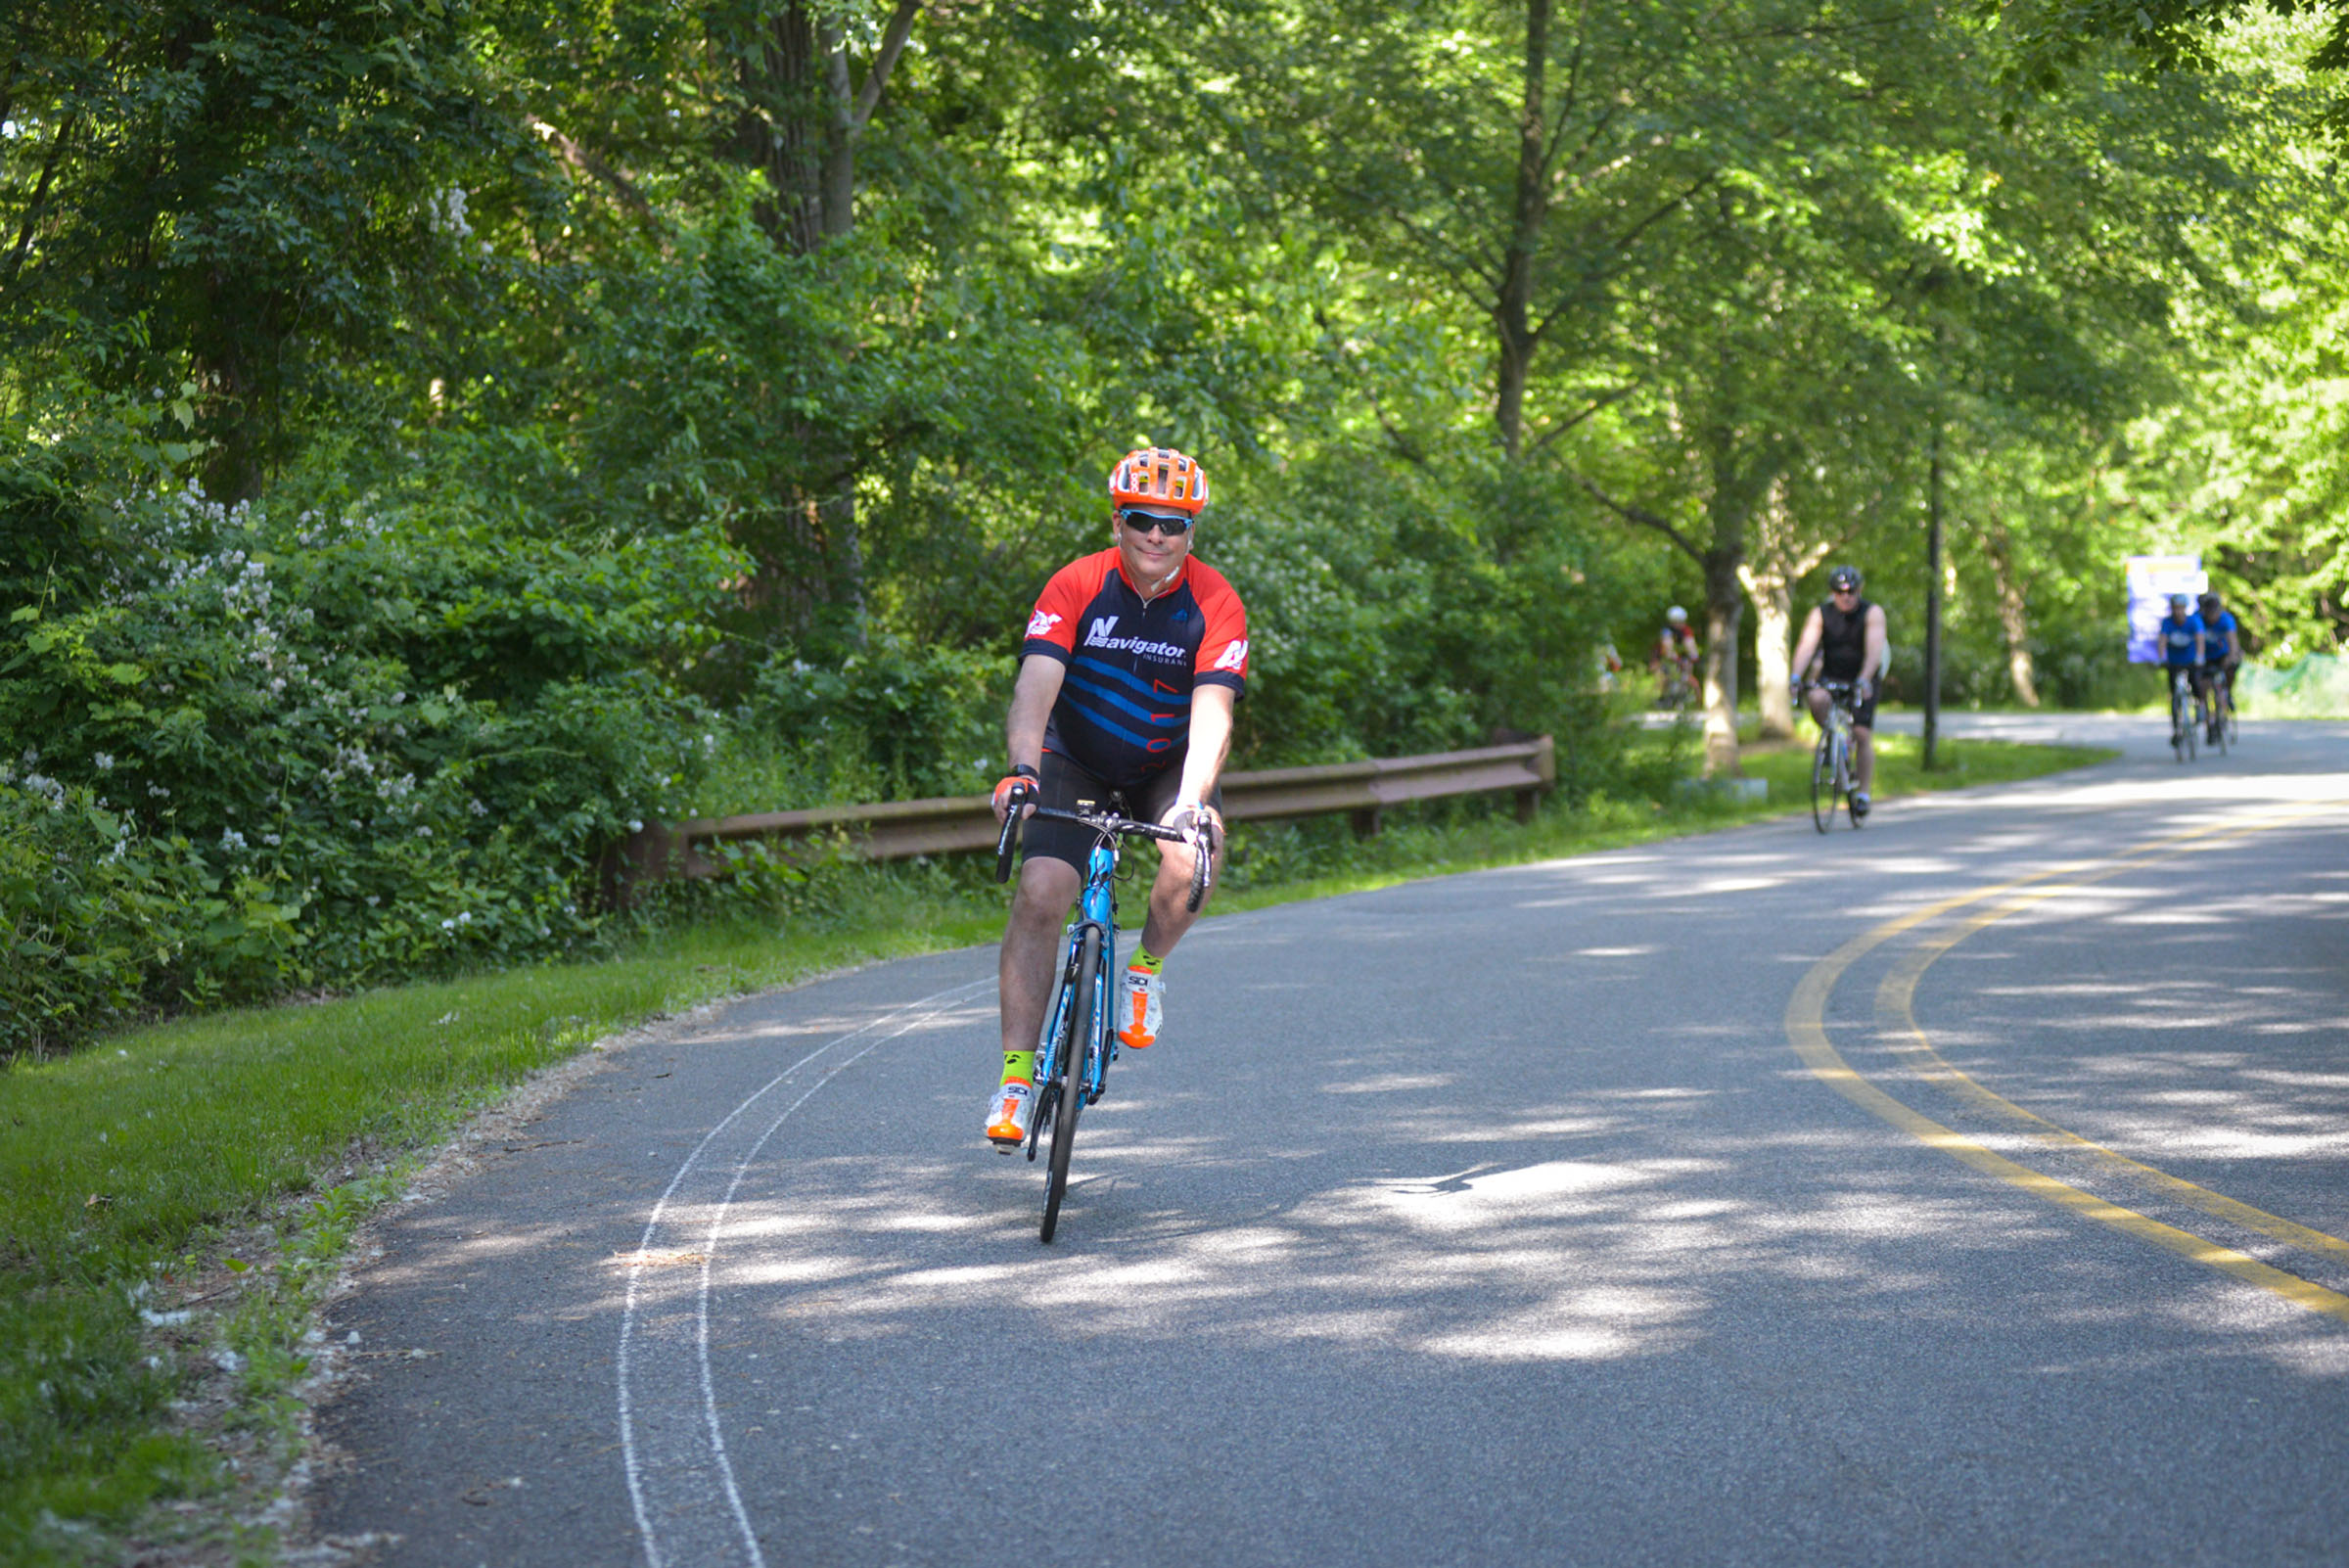 2017-06-04 GTD4A Charity Bike Ride - BCC - Paramus NJ-1856.jpg